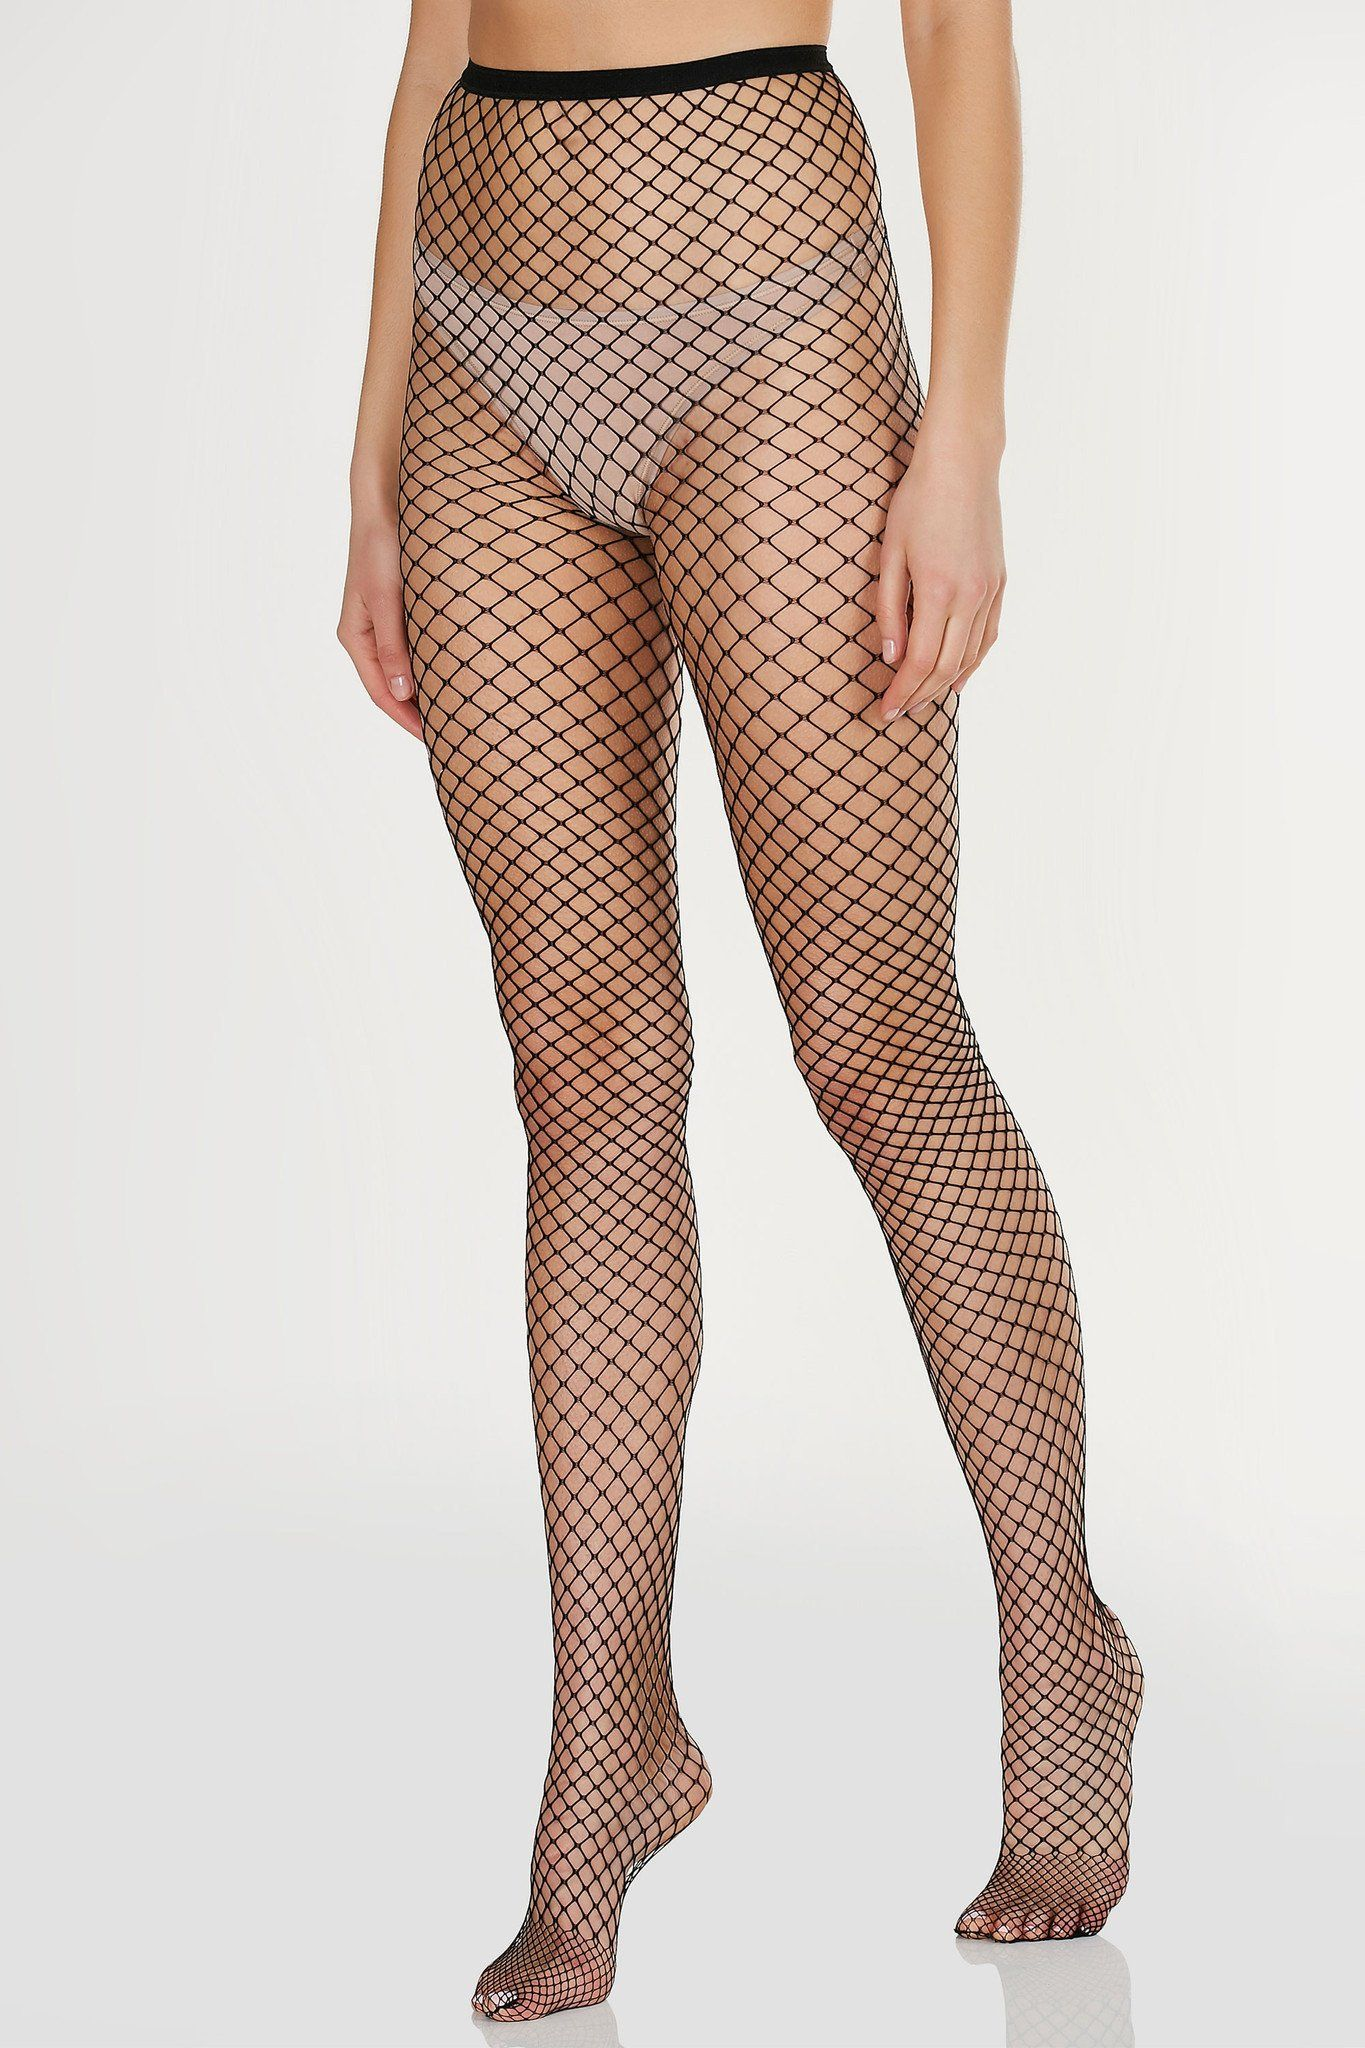 a89efd8aee8 Trendy full length fishnet stocking with comfortable stretch for fit. -  Imported - One size fits most - Available in Black   White